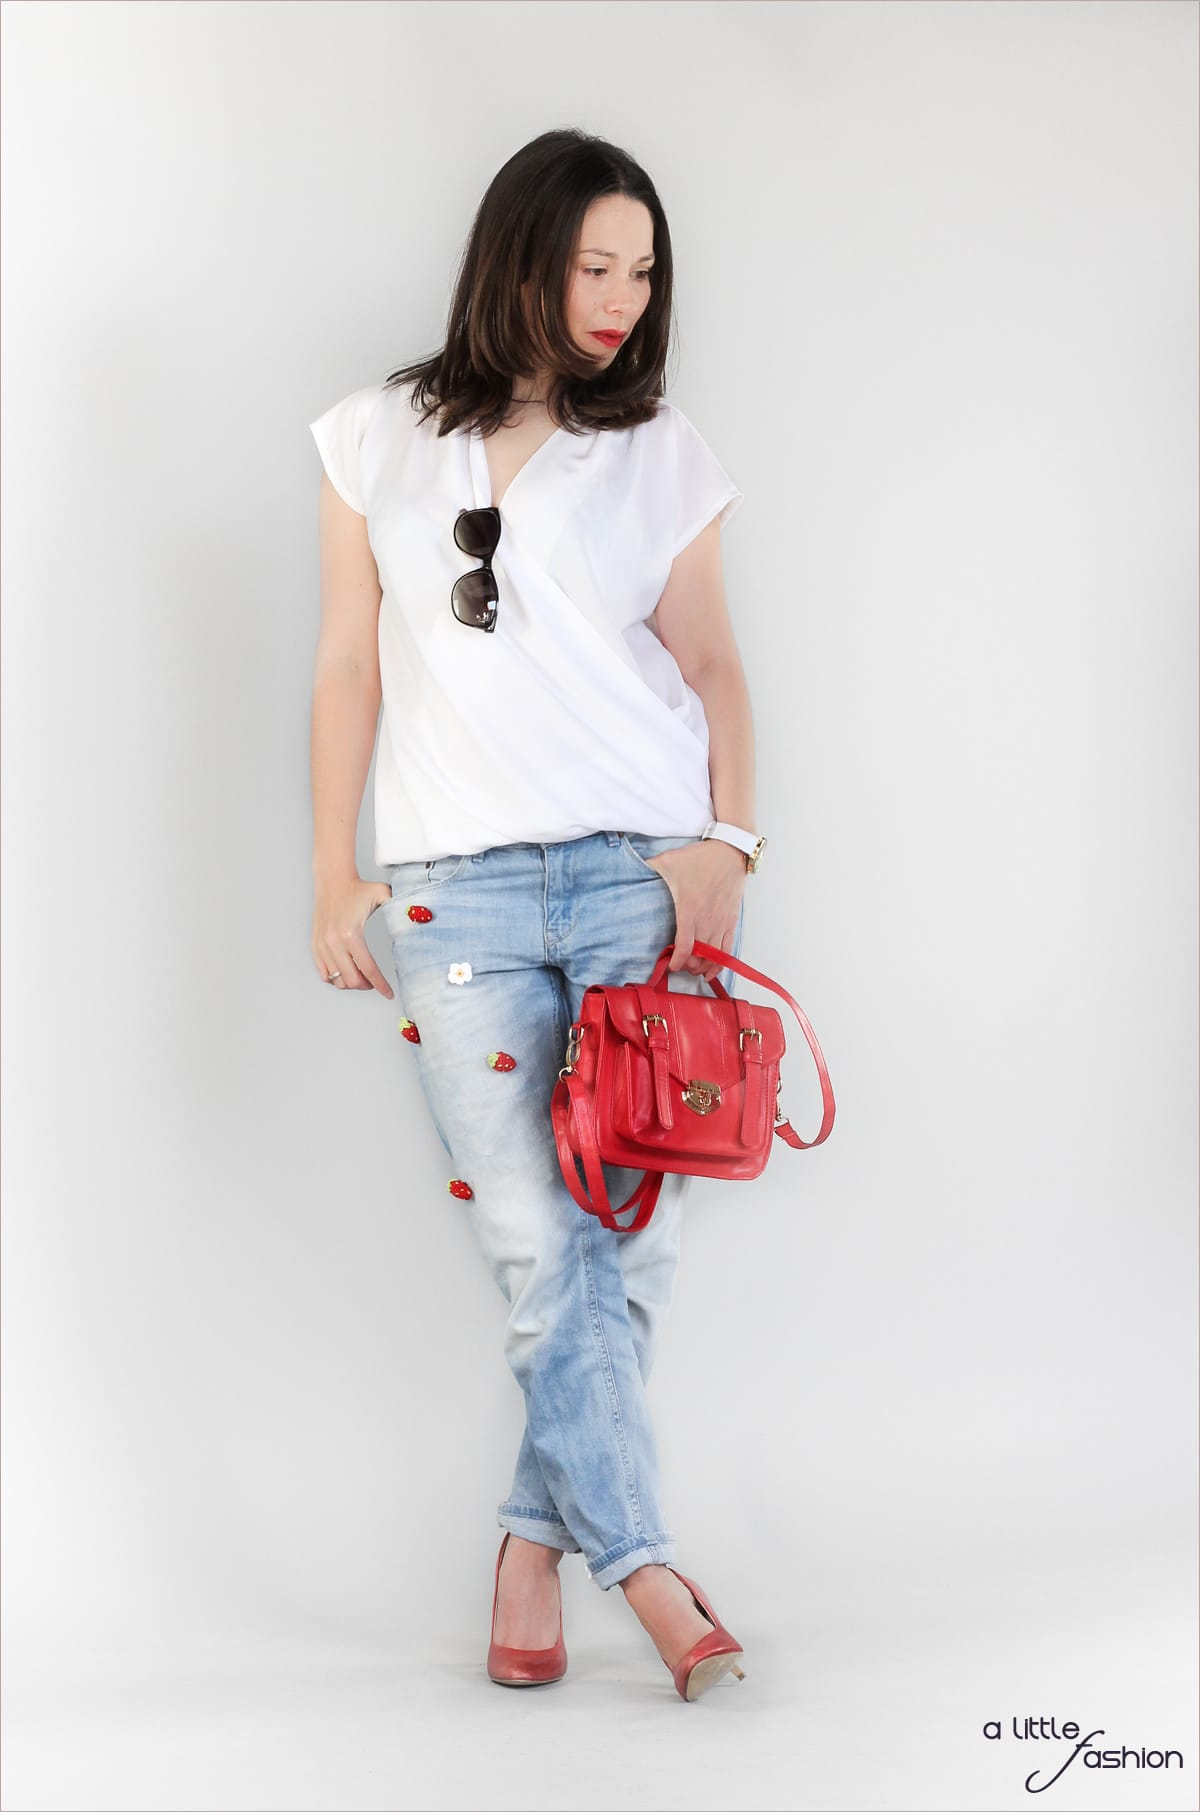 Patched Boyfriend Jeans mit Pumps und Bluse | A Little Fashion | https://www.filizity.com/fashion/patched-boyfriend-jeans-mit-pumps-und-bluse